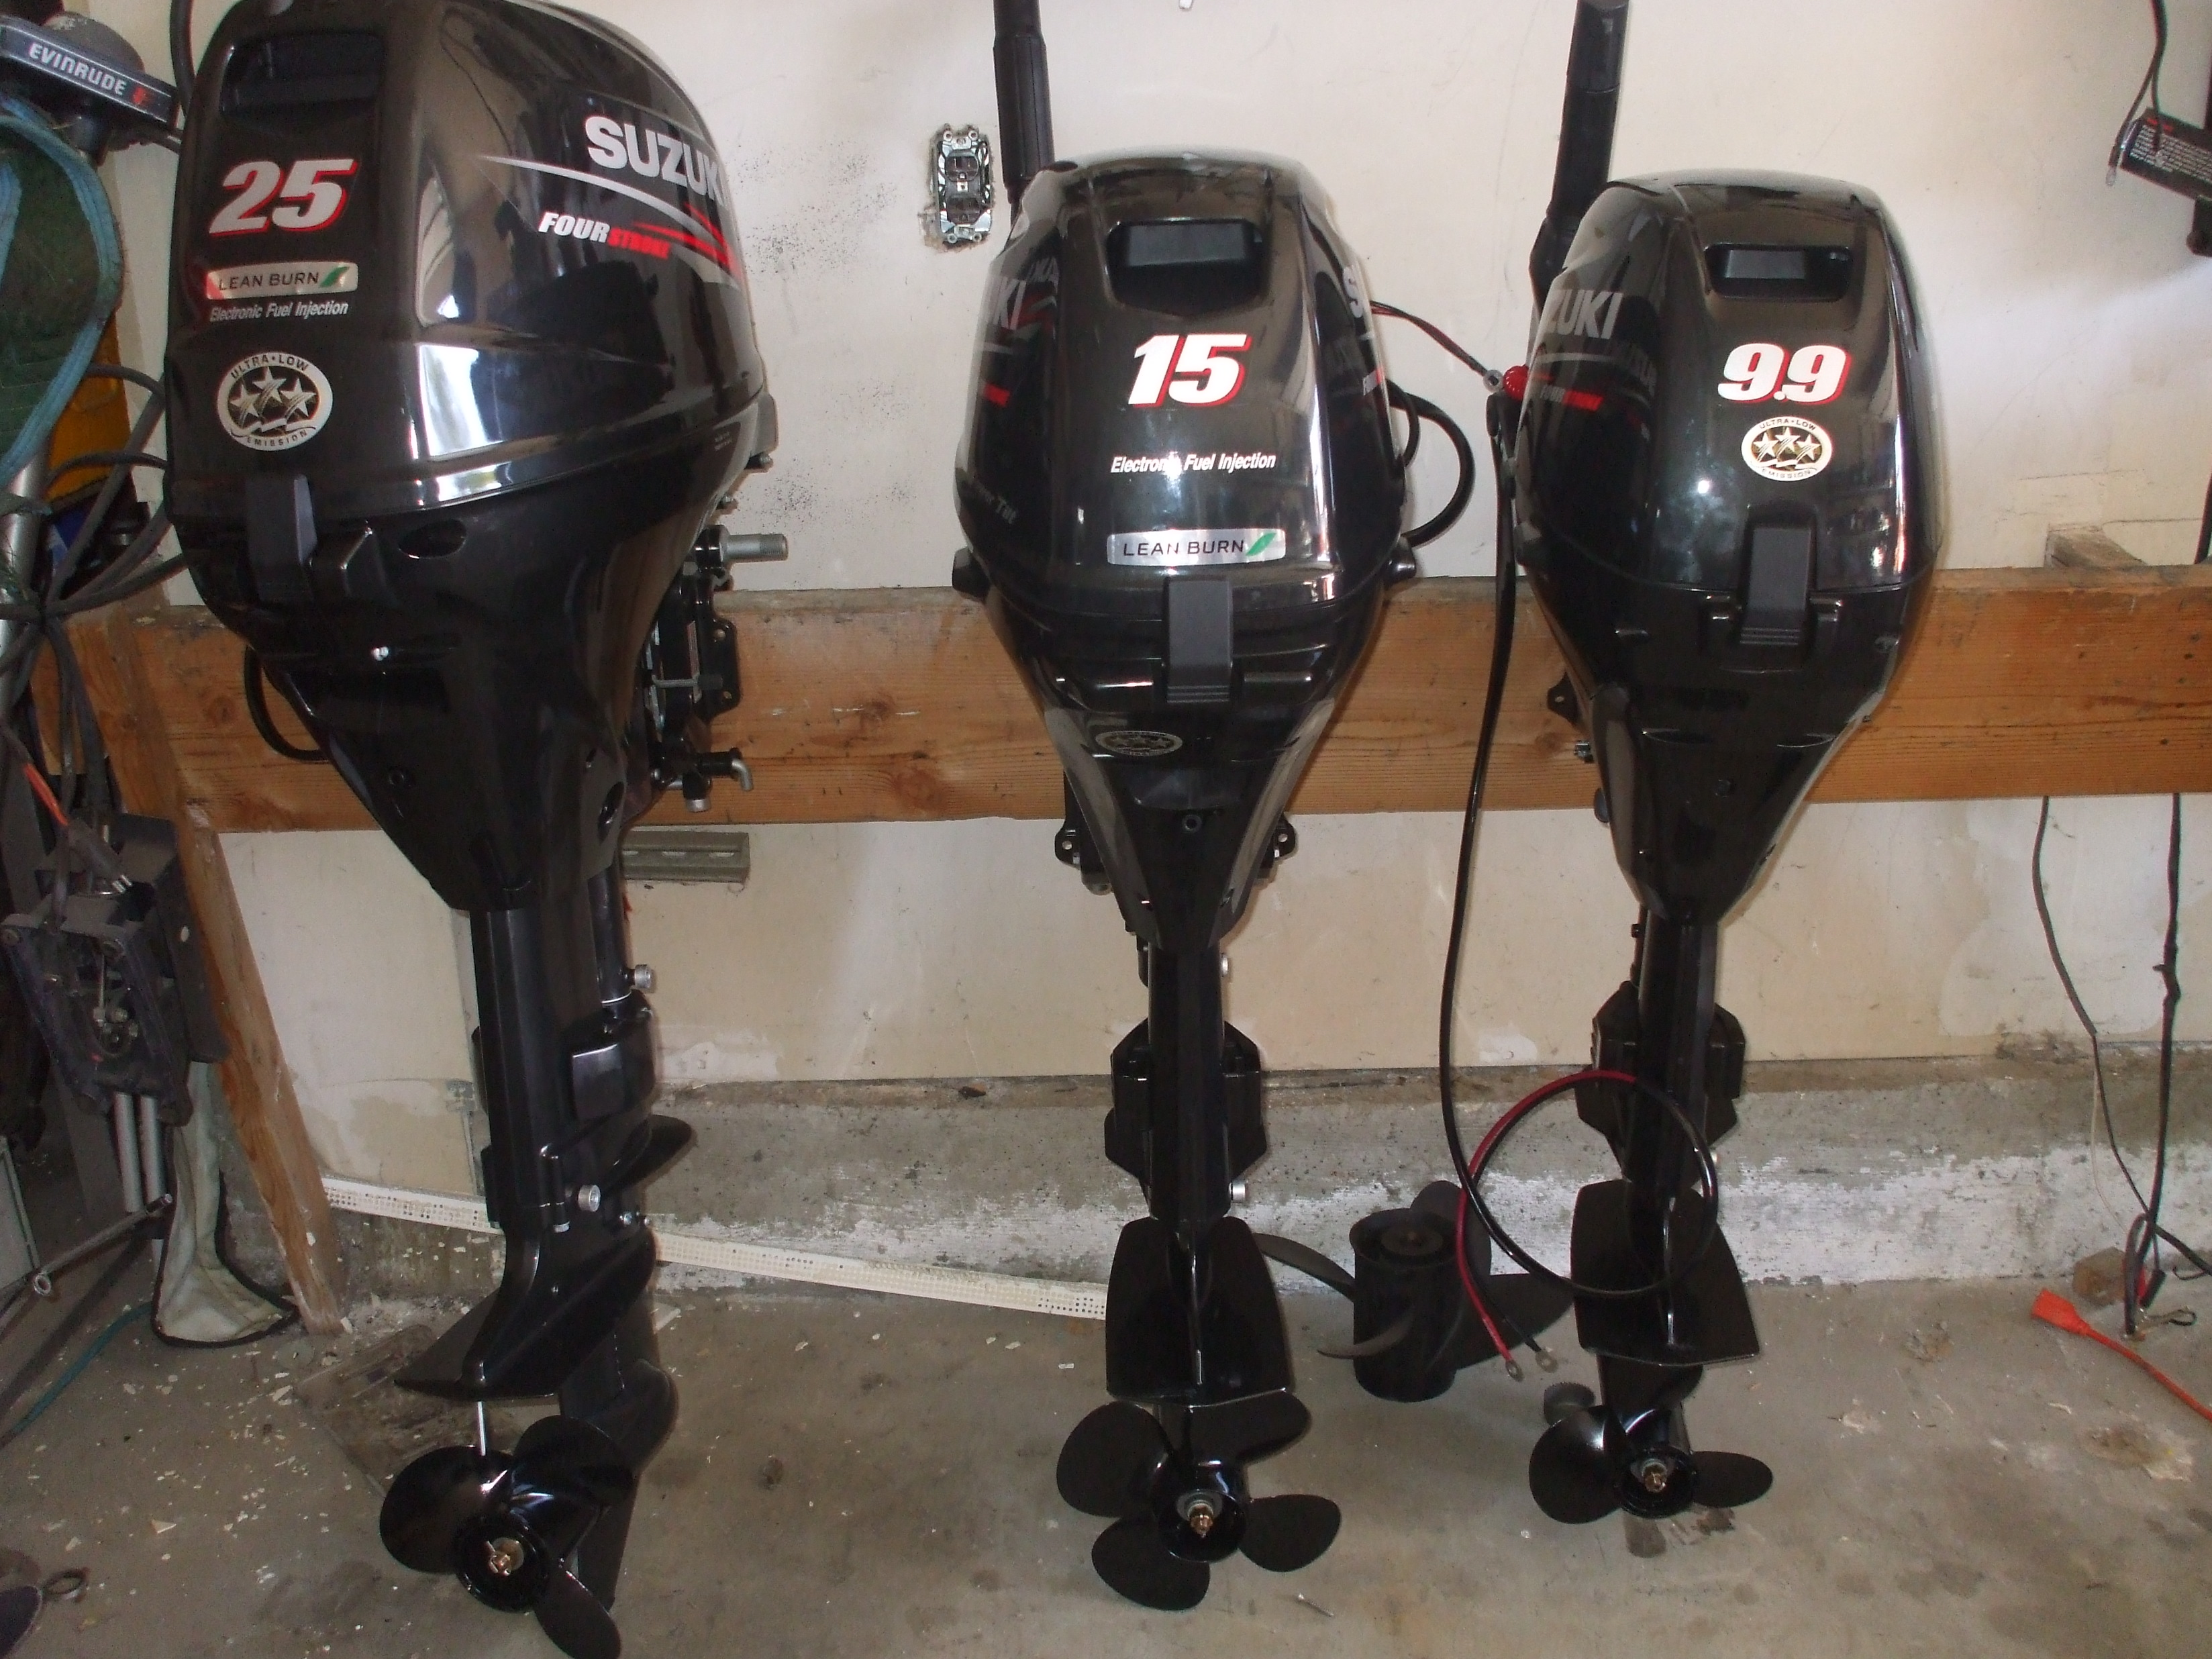 Suzuki Outboard motors 2.5-300 hp